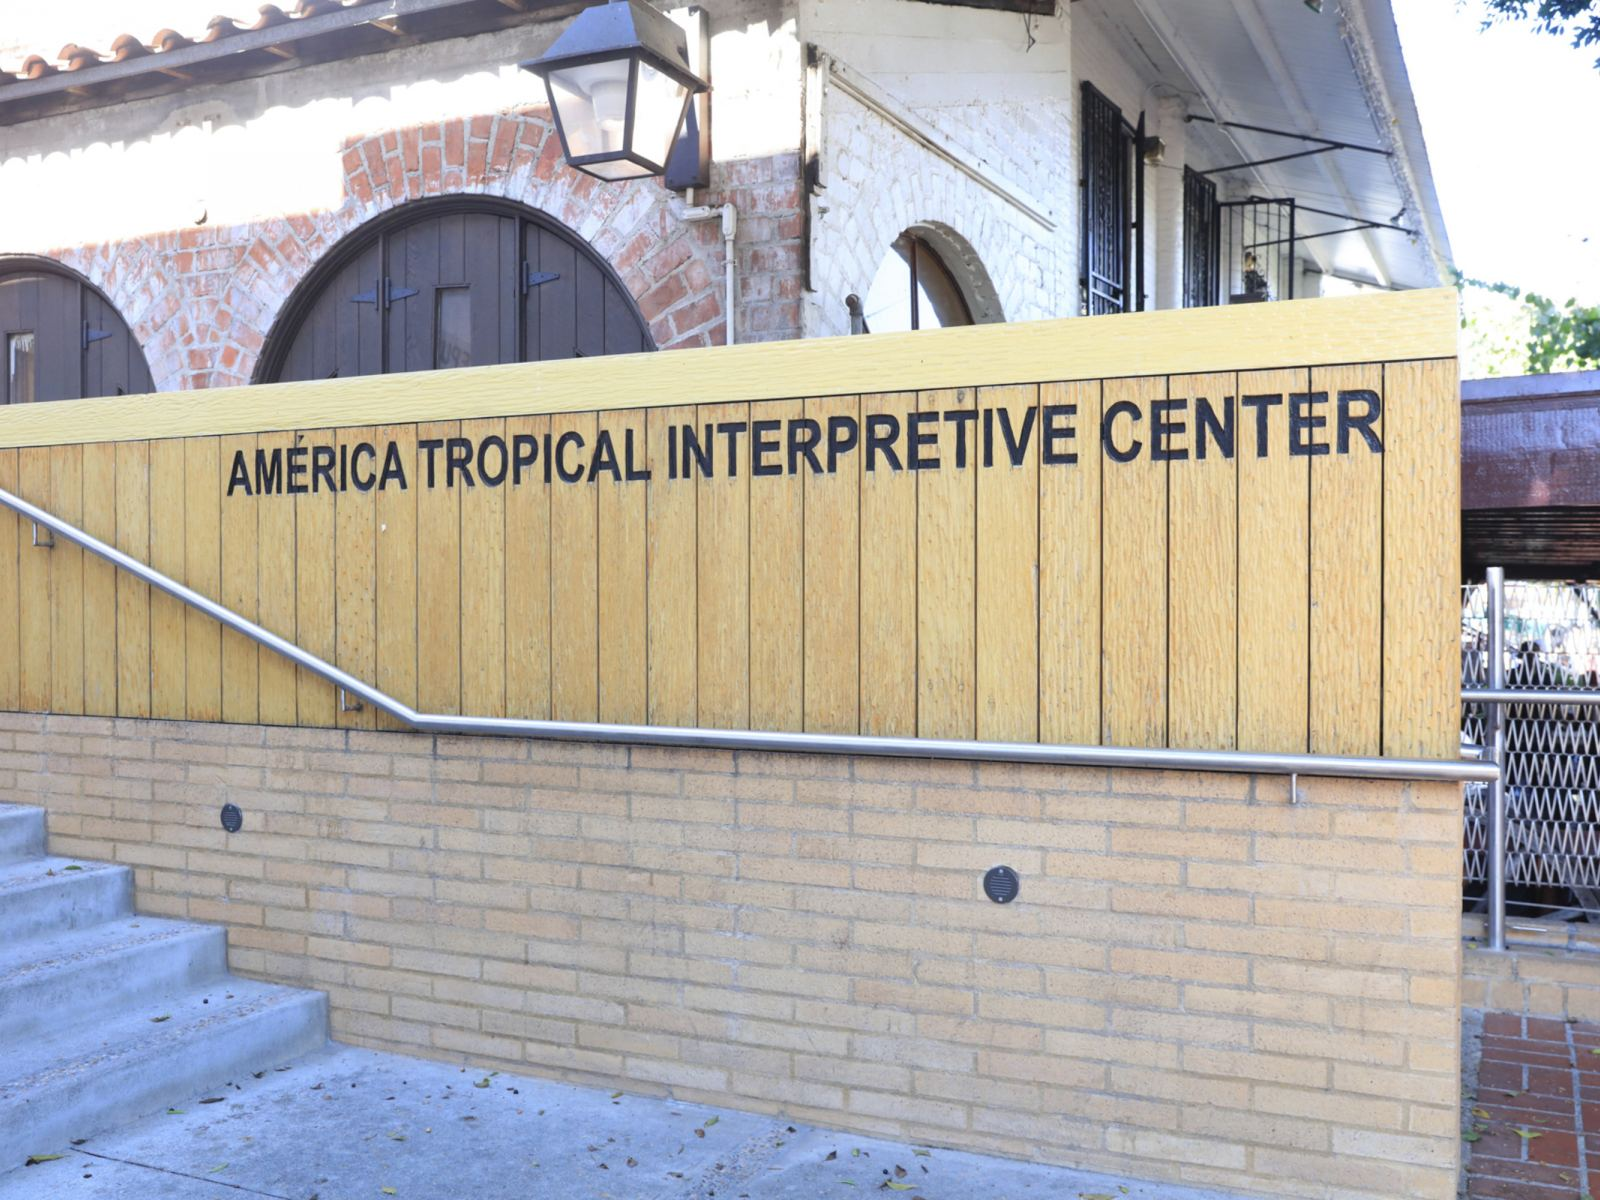 America Tropical Interpretive Center